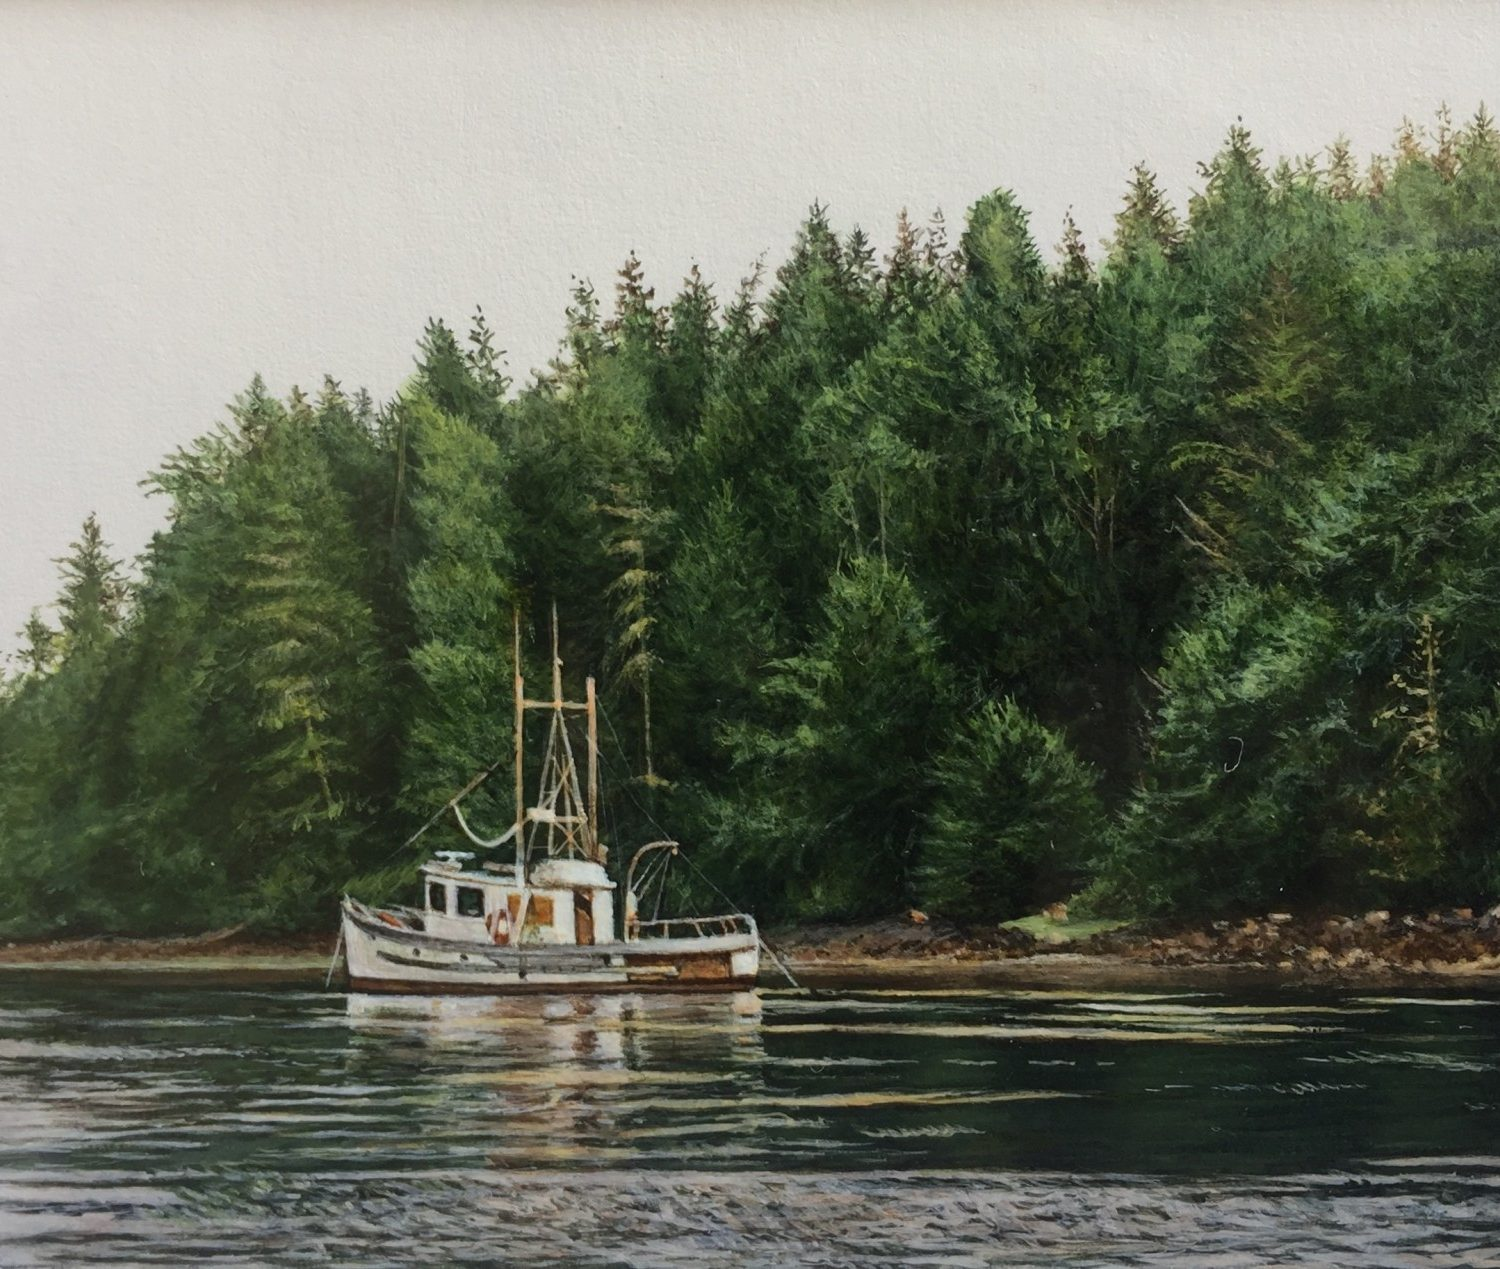 "On the Water - 2"" x 3"" - Acrylic - Tiffany Hastie"